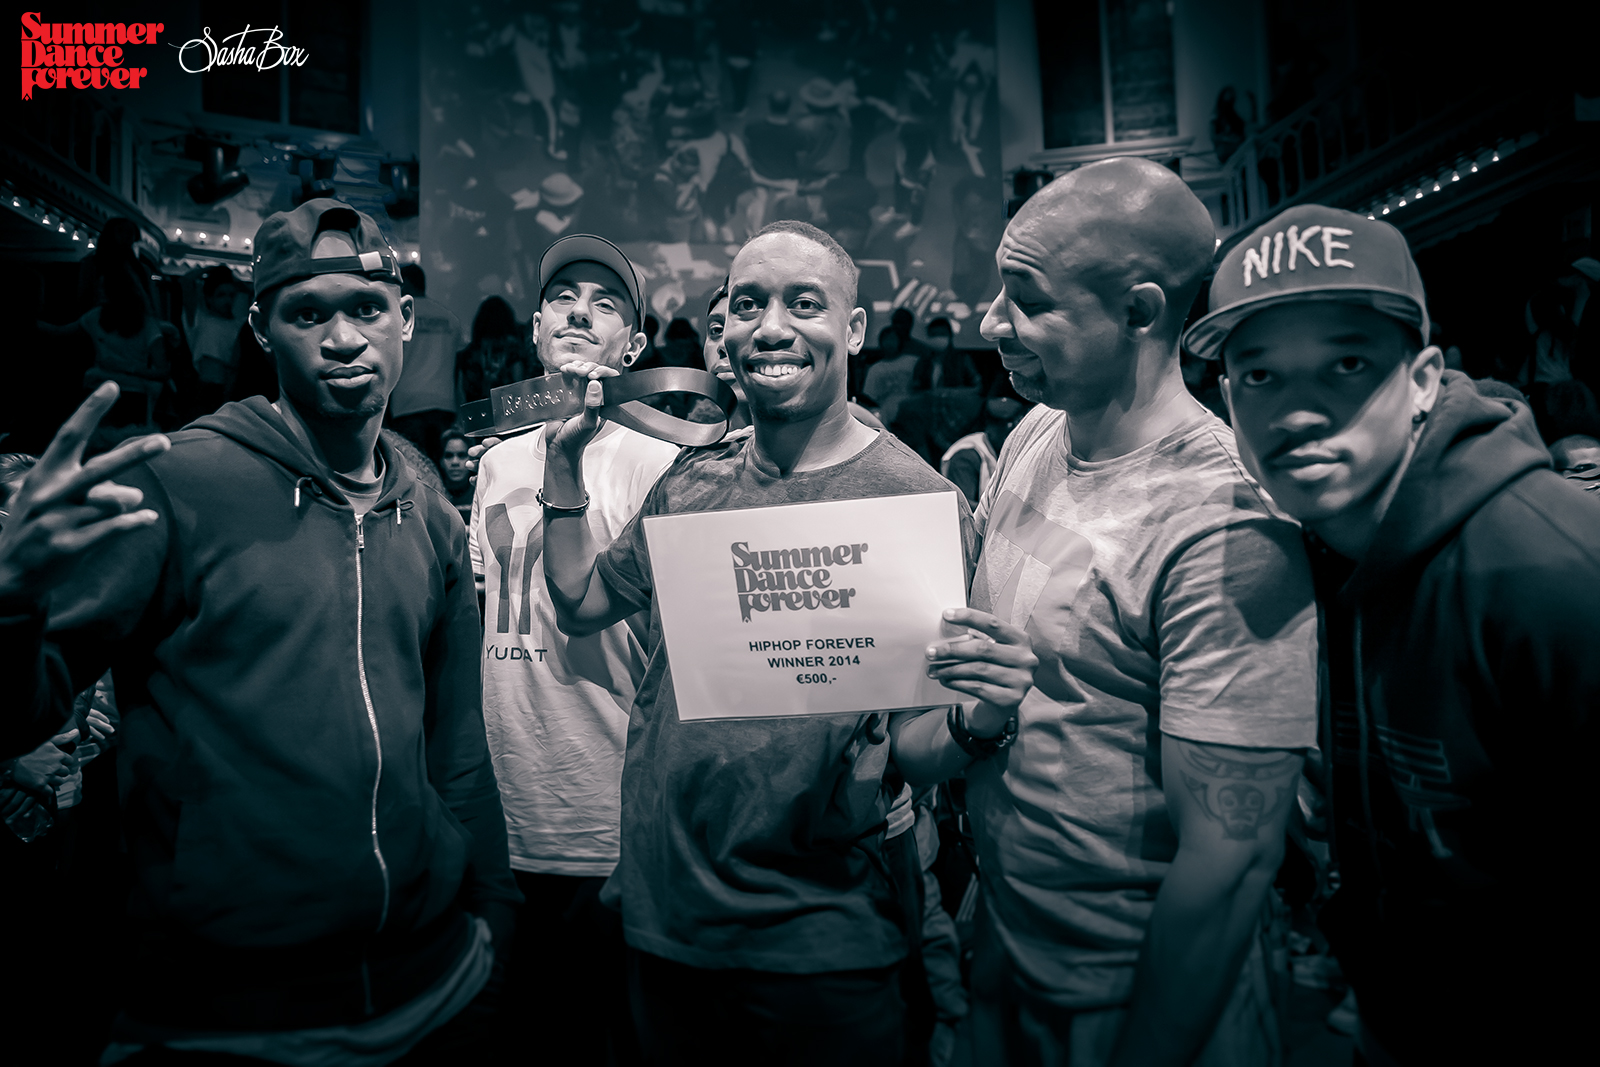 And the winner of Hiphop Forever 2014 is… Jimmy Yudat!